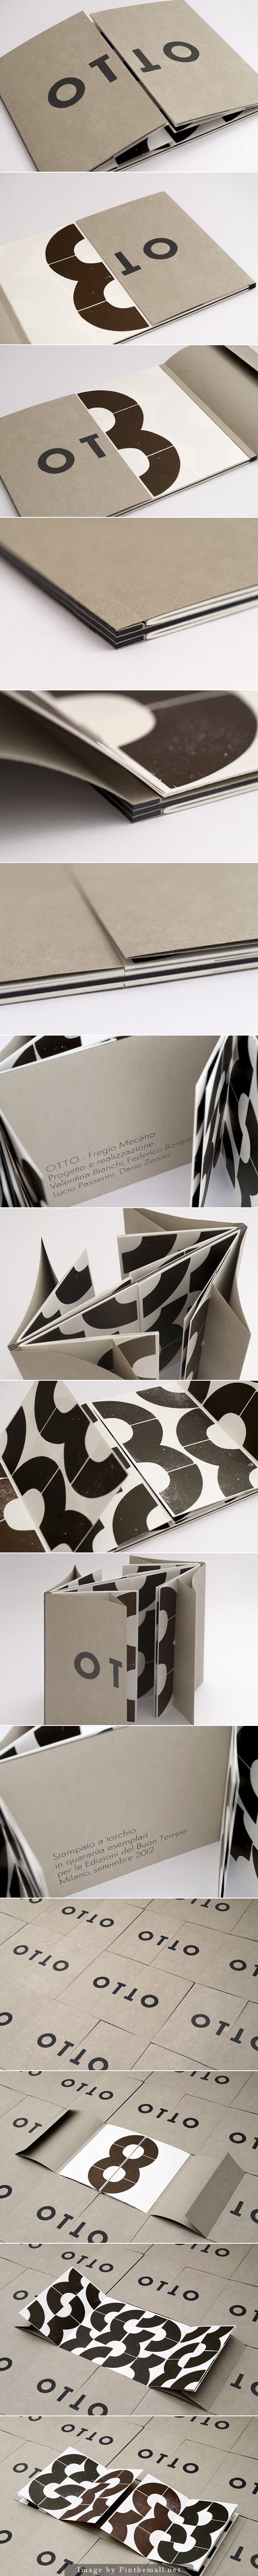 Otto artist book by Normat Milano